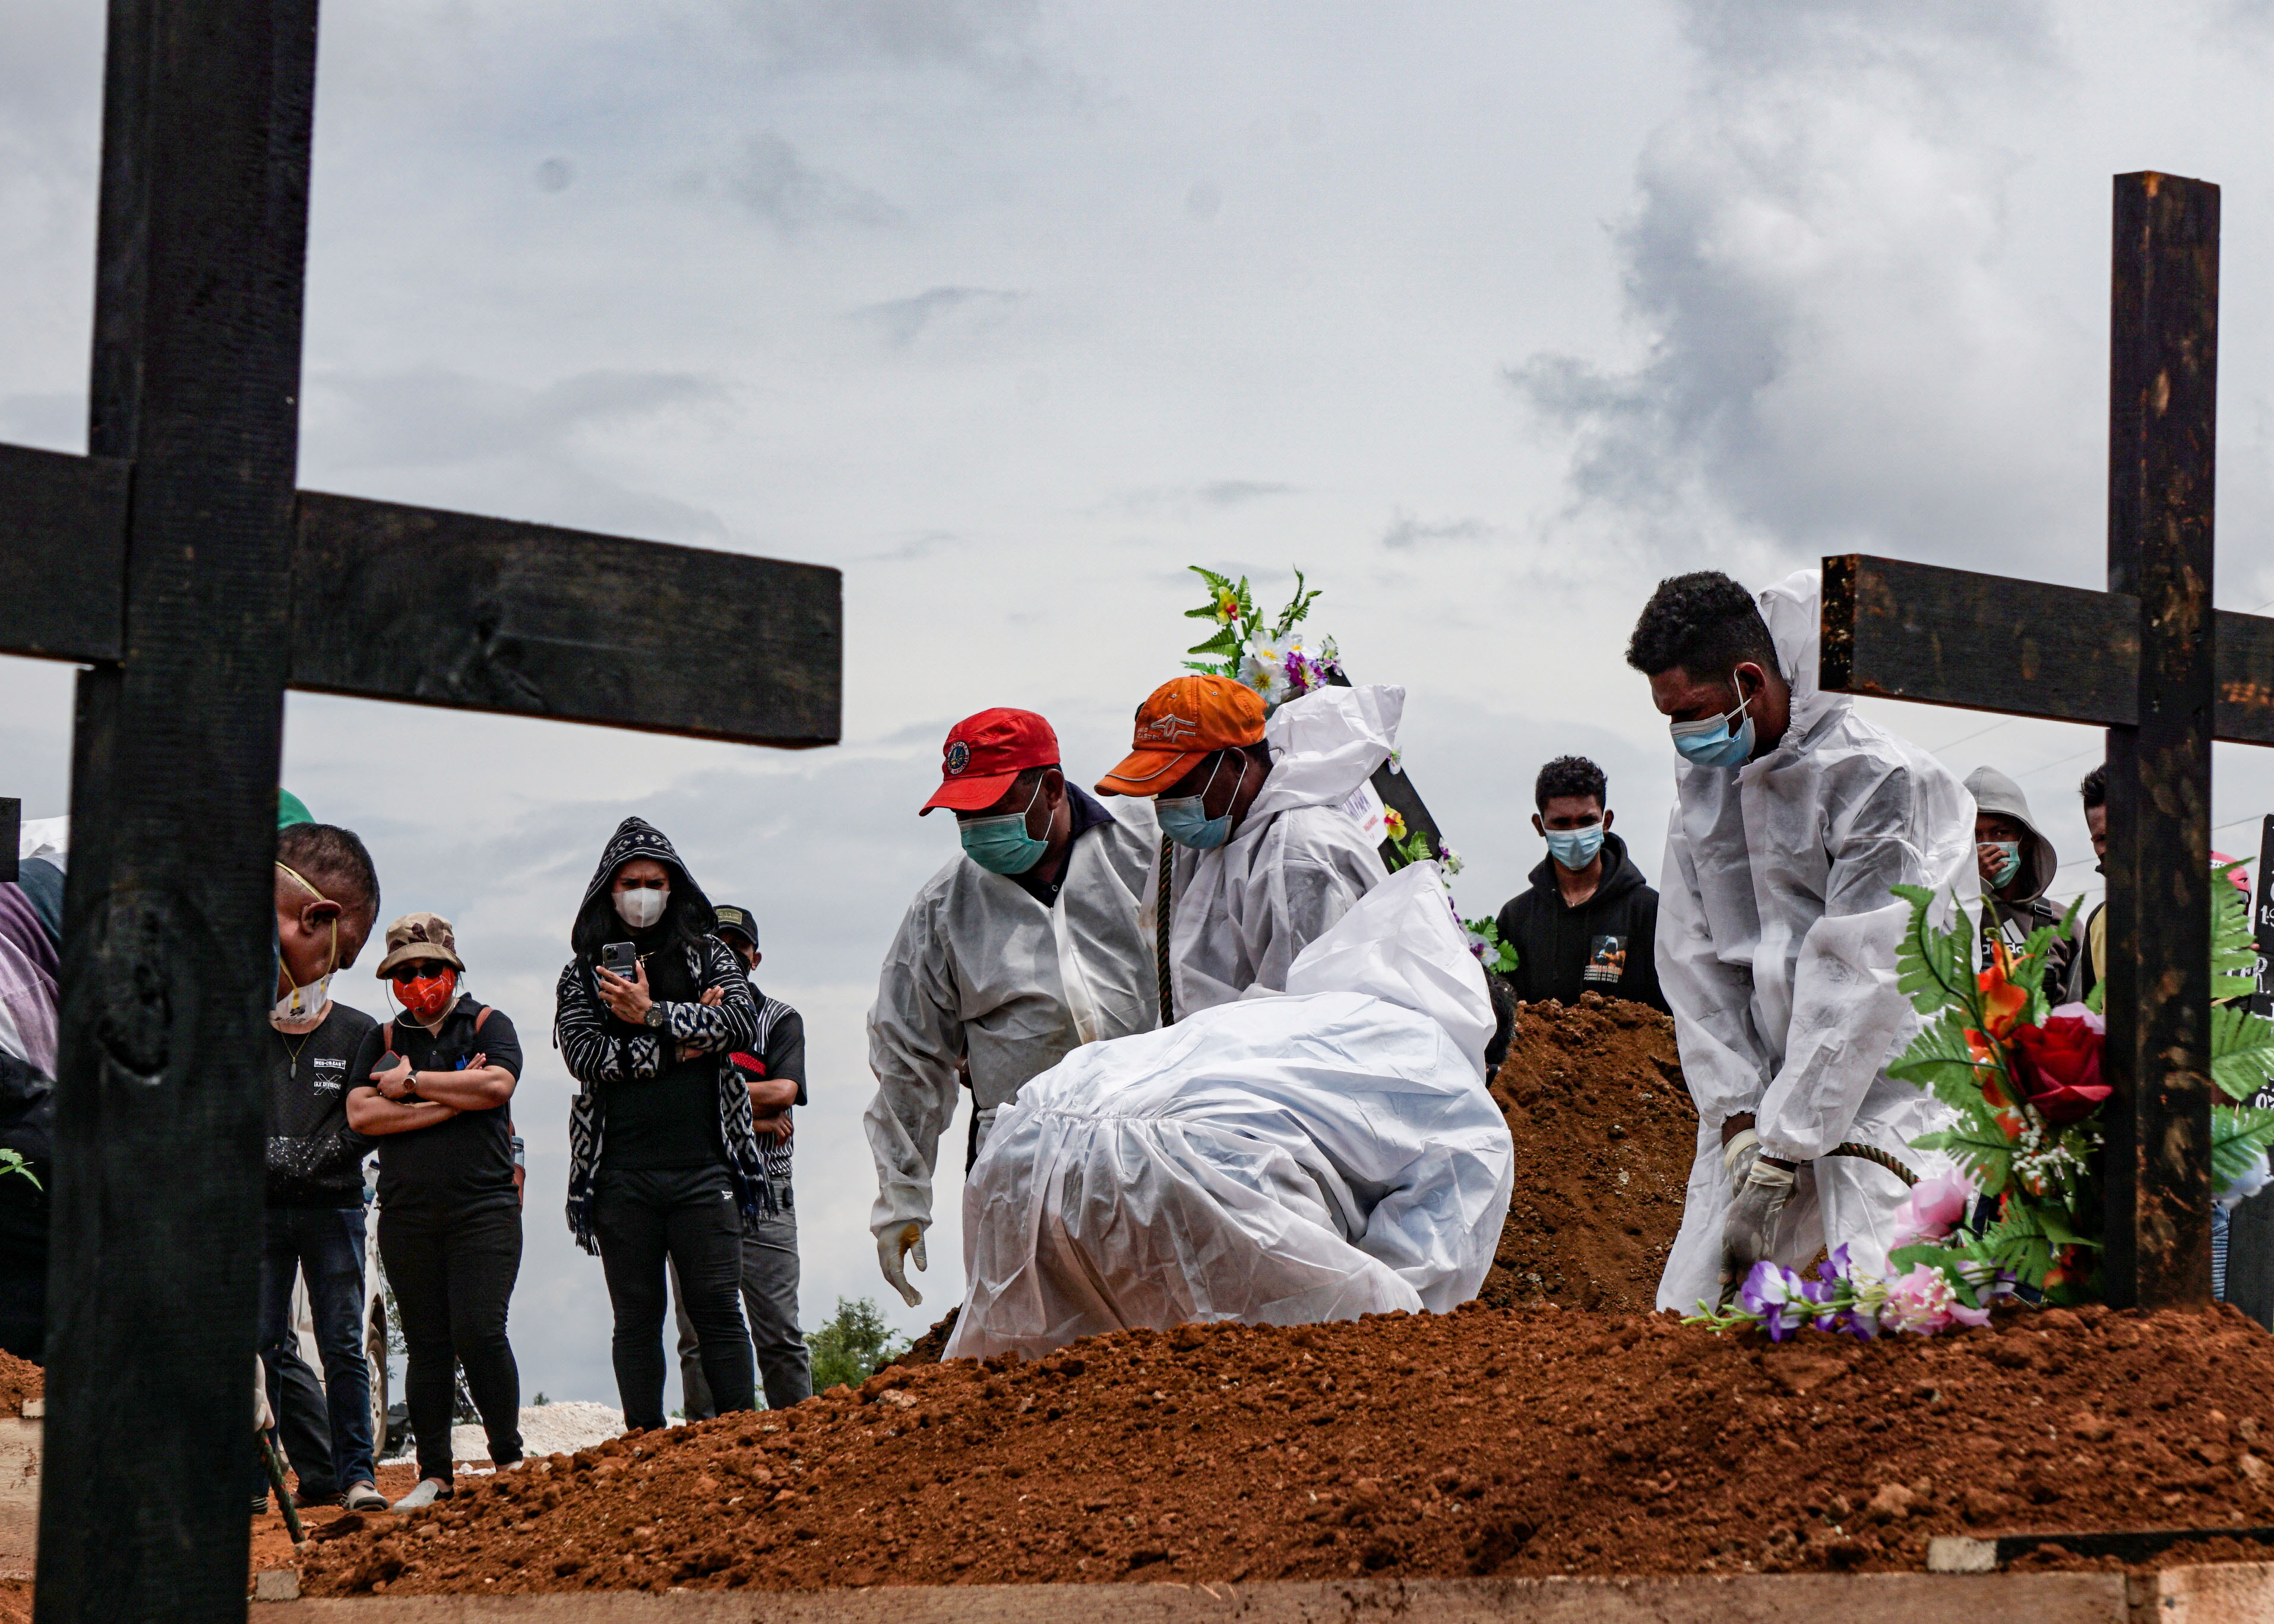 Gravediggers wearing personal protective equipment (PPE) burry a coffin at a burial area provided by the government for coronavirus disease (COVID-19) victims, as cases surge in Jayapura, Papua, Indonesia July 20, 2021, in this photo taken by Antara Foto/Indrayadi TH/via REUTERS